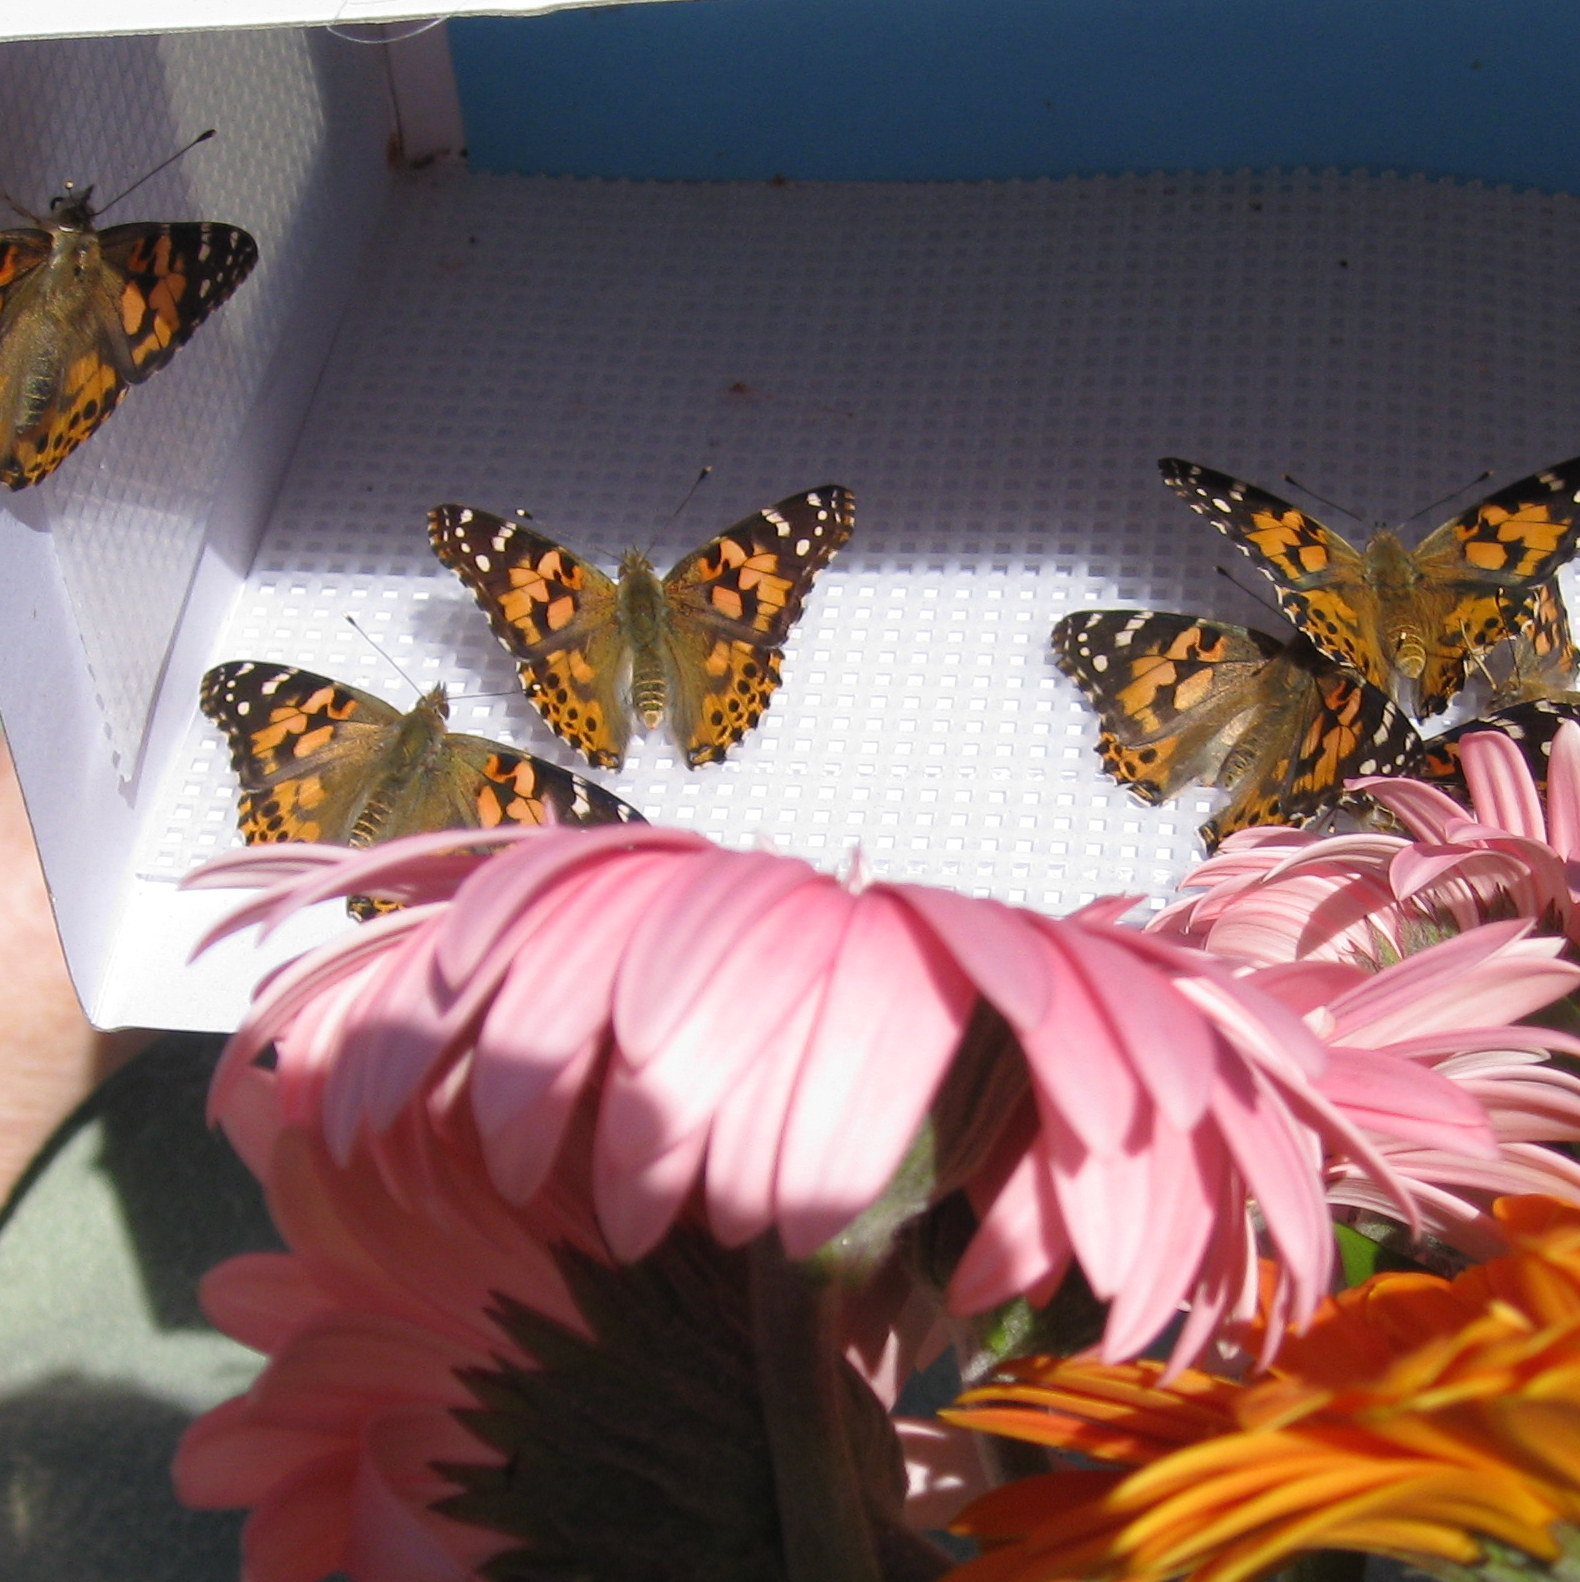 112 Painted Lady Butterflies and 2 Monarch Butterflies